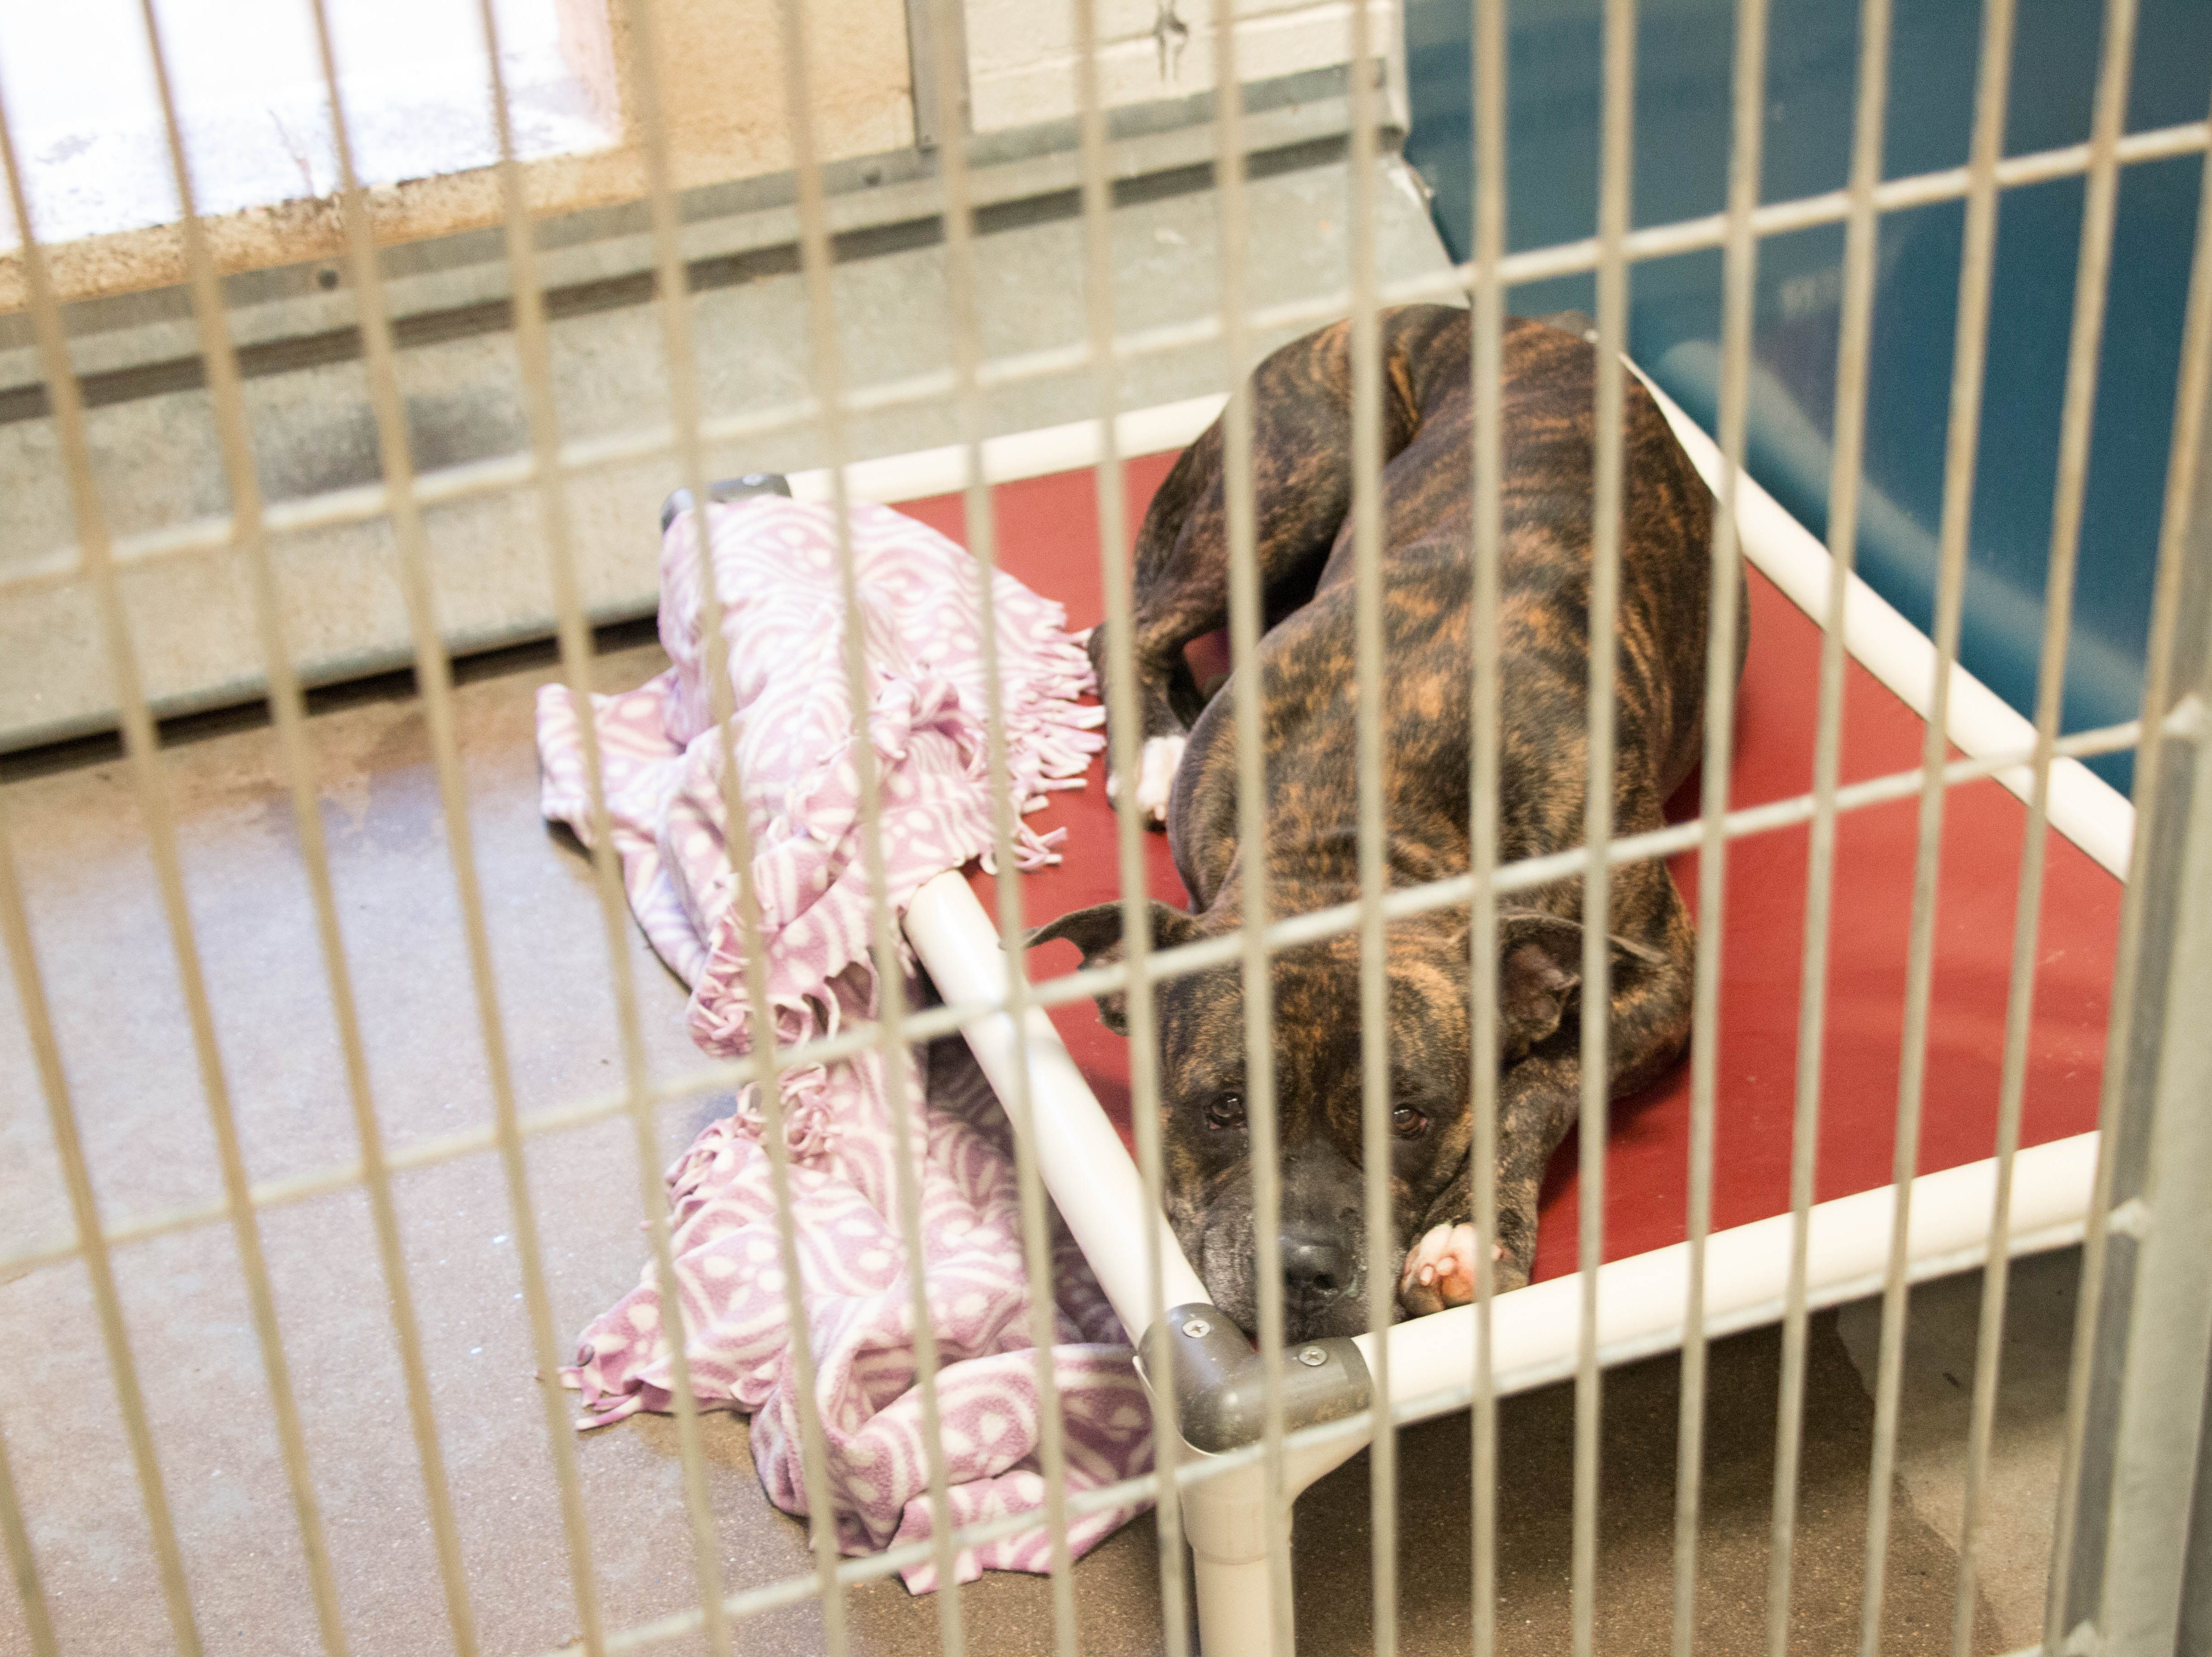 The Maricopa County Animal Care and Control shelter held free adult dog and cat adoptions during a 'Clear the Shelter' event August 18, 2018.